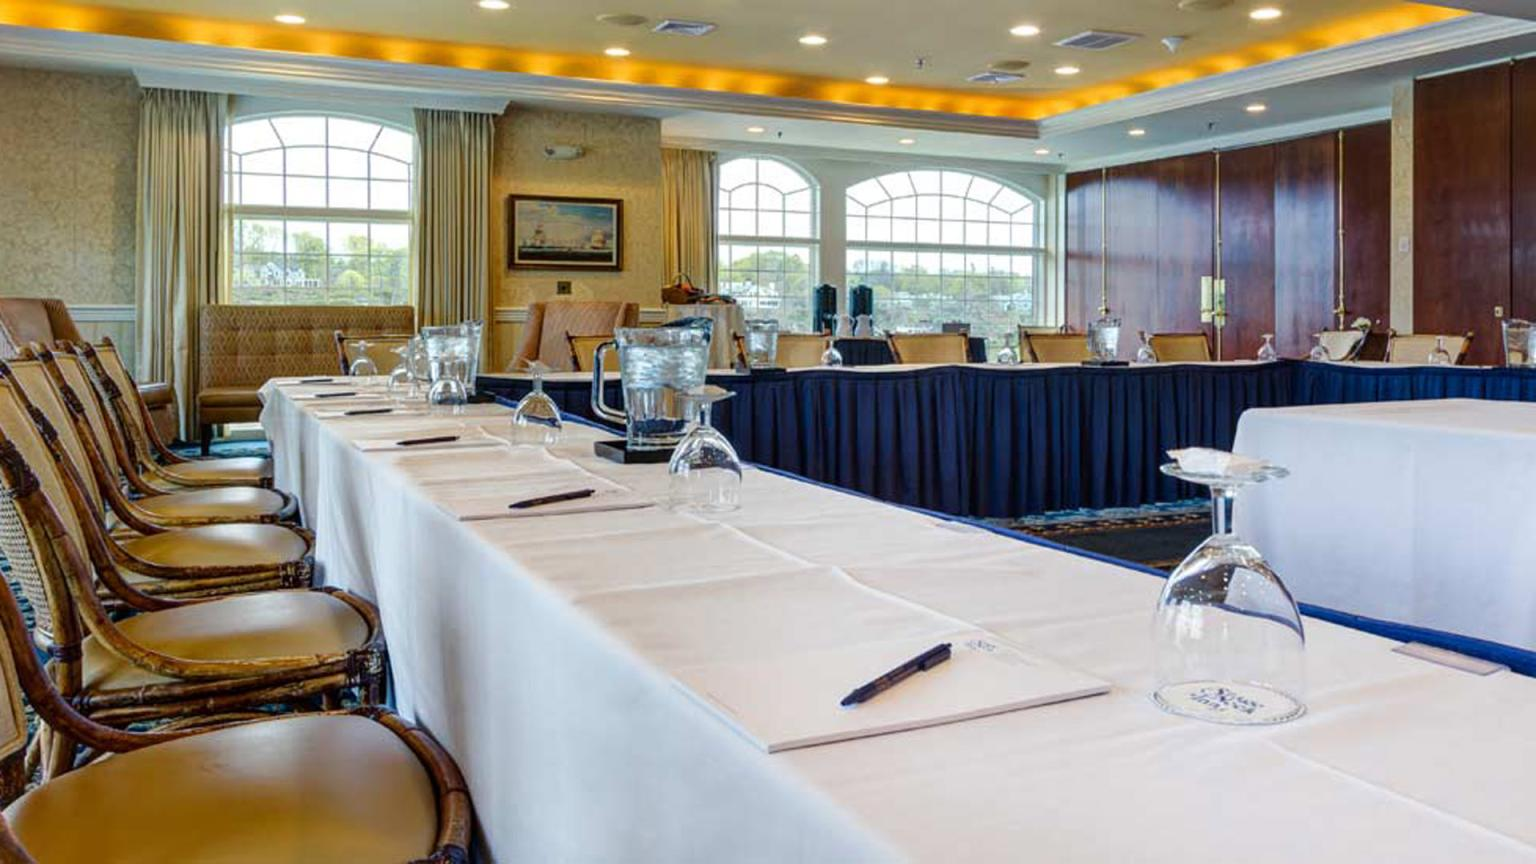 Stage Neck Inn offers three venues for meetings. Each offers great views.